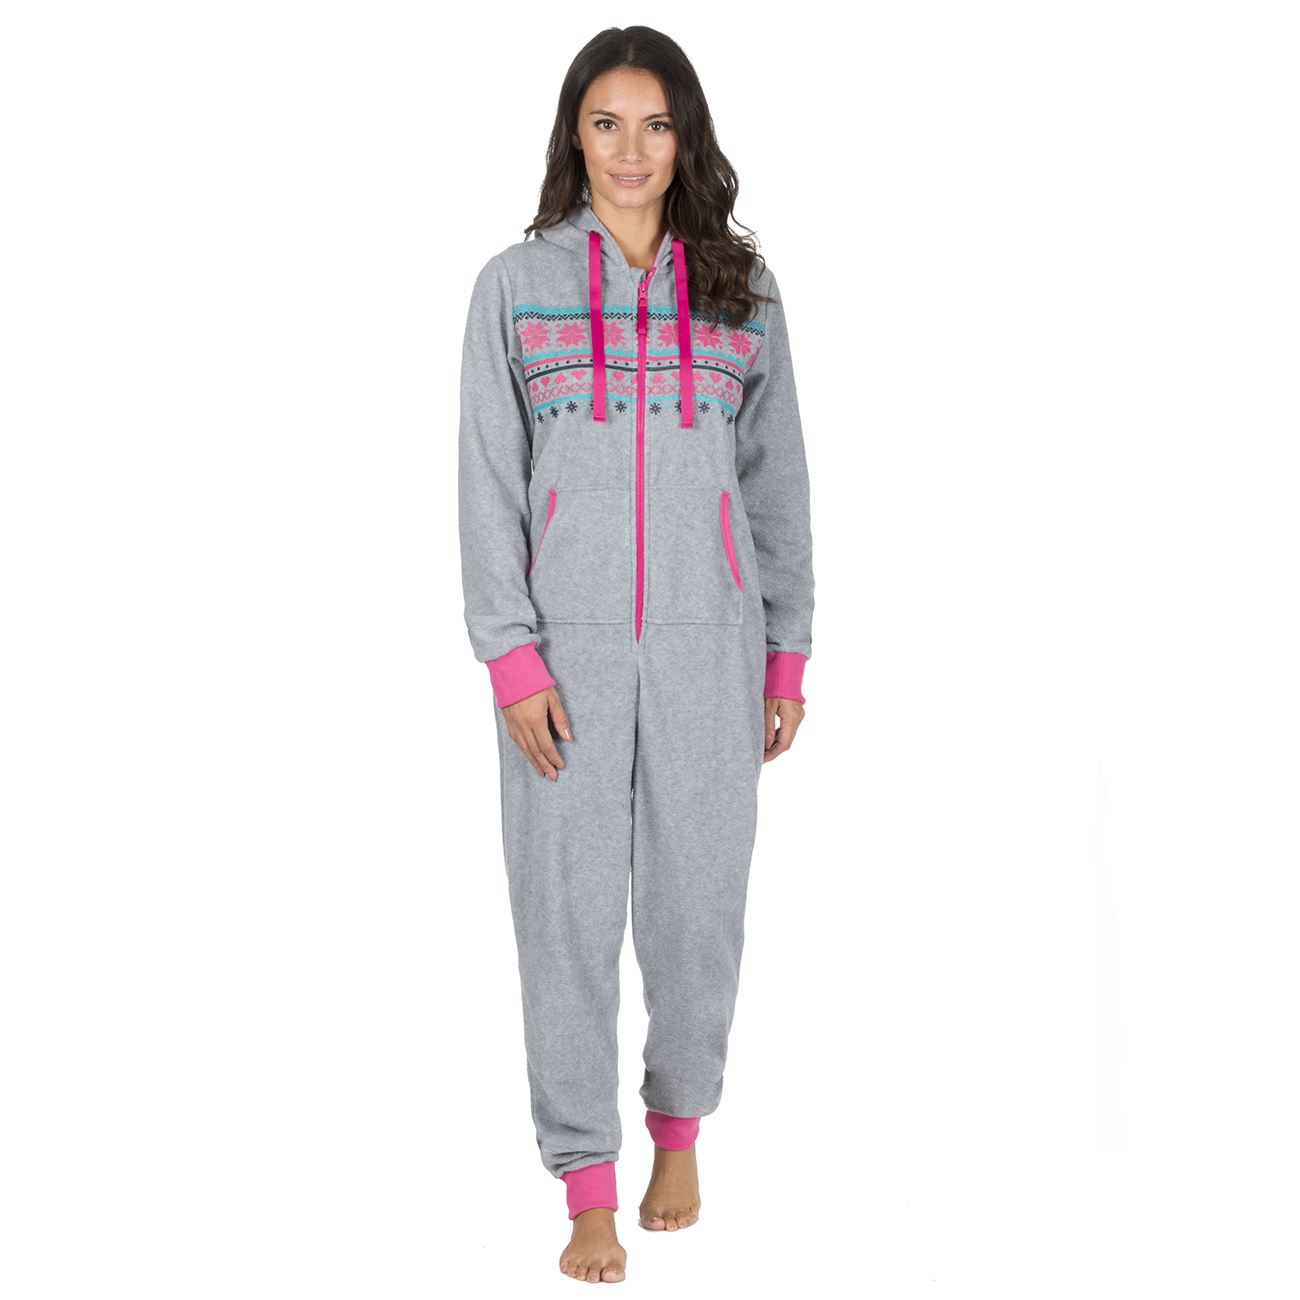 Ladies-Womens-Girls-Fleece-All-In-One-Pyjamas-Outfit-Jumpsuit-Costume-Size-6-18 thumbnail 42